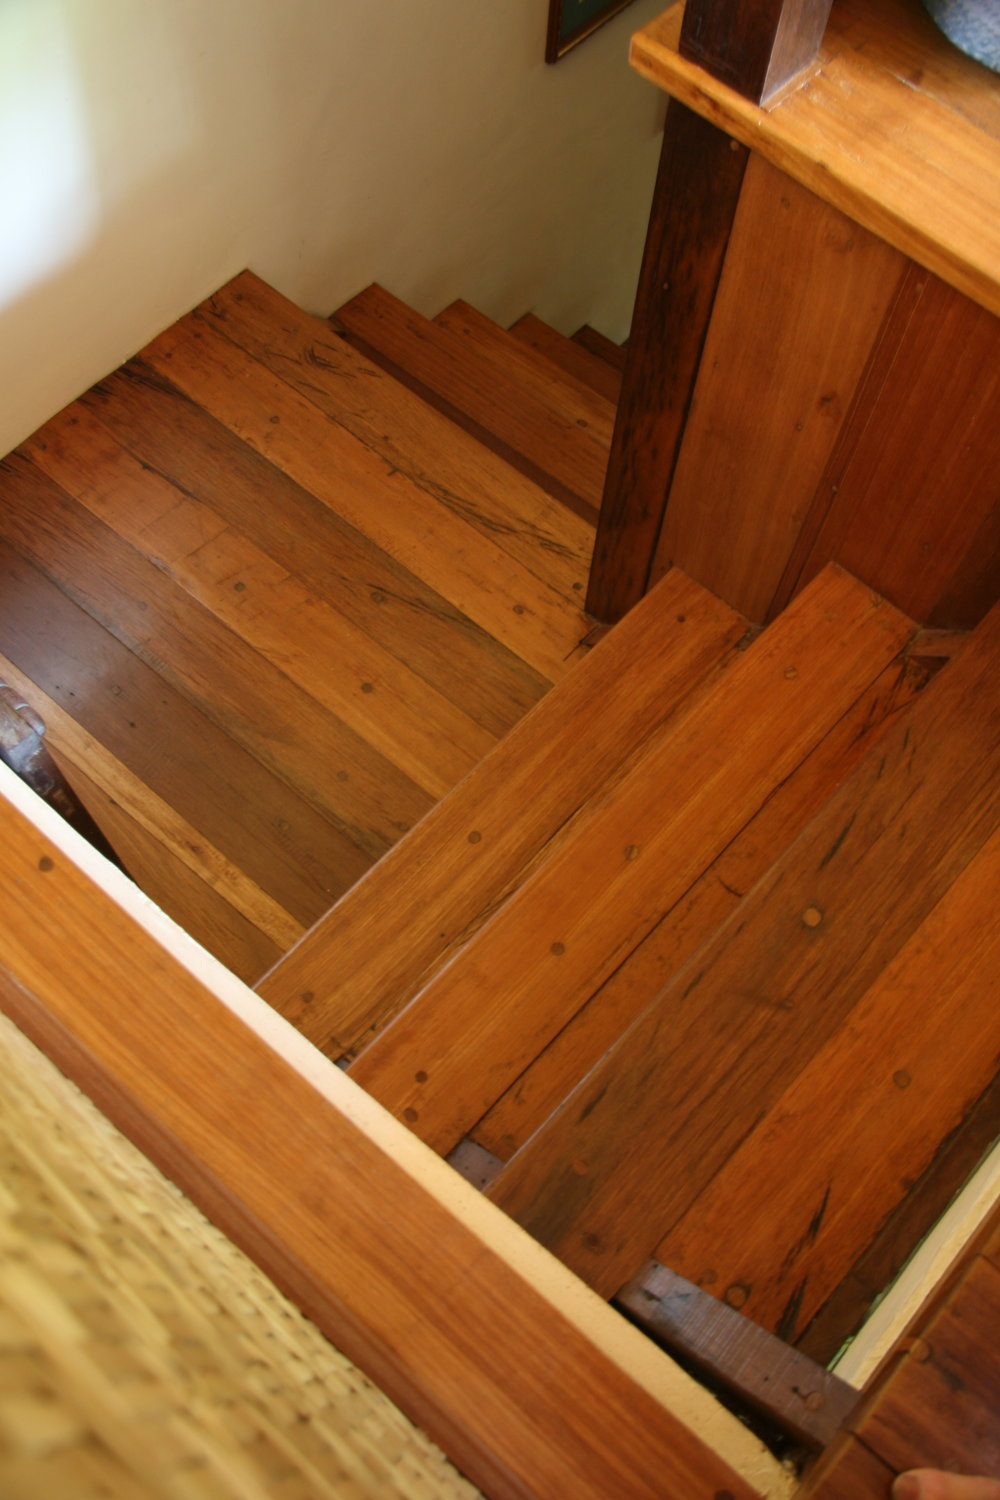 Wooden floor & stairs